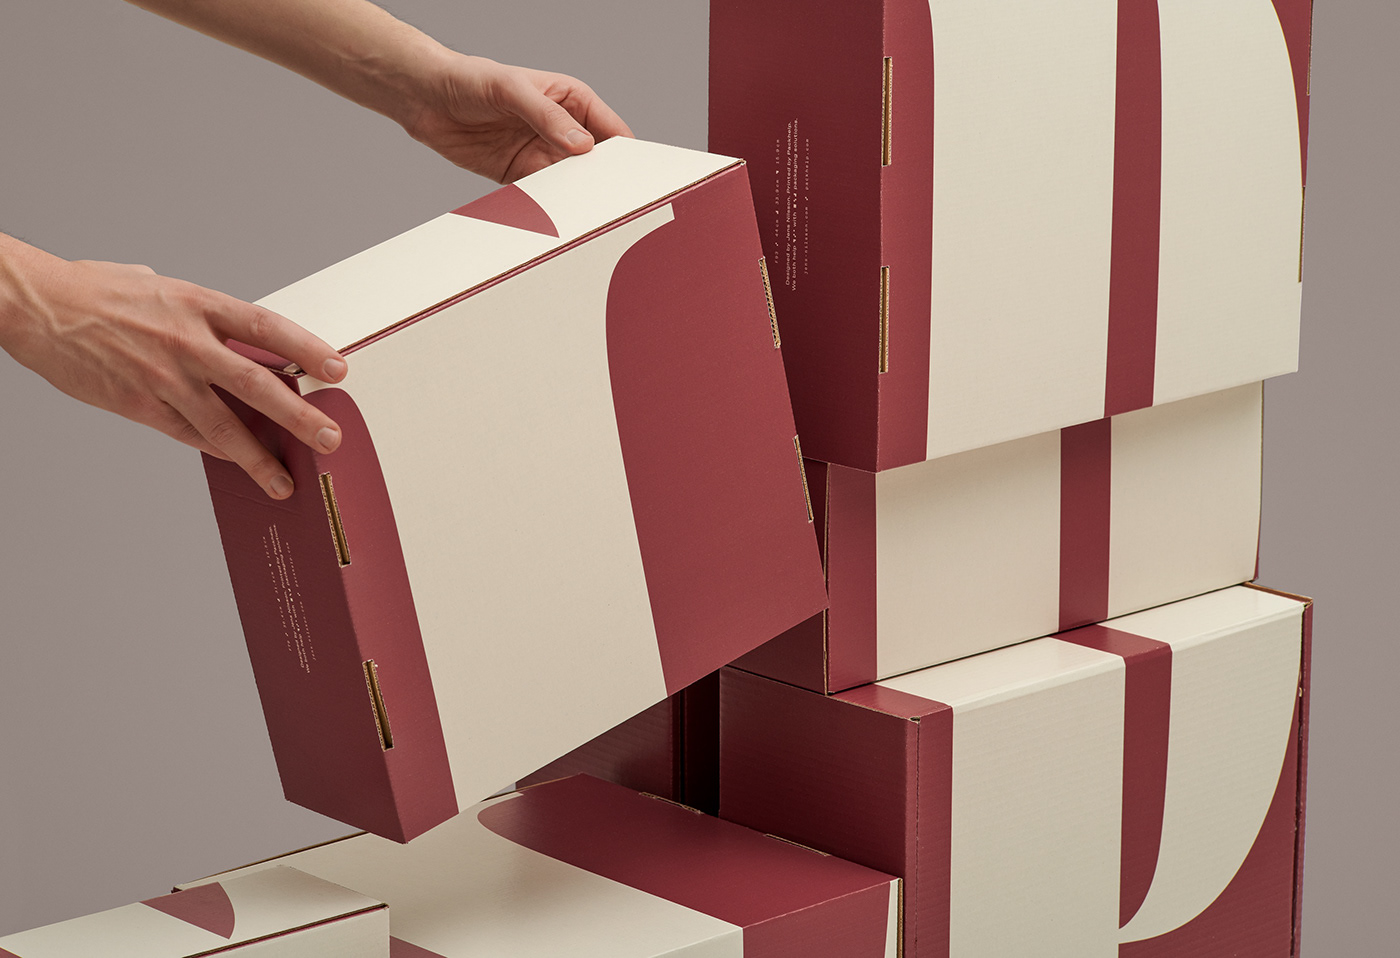 box Collateral help mailer box Packaging shipping box still life